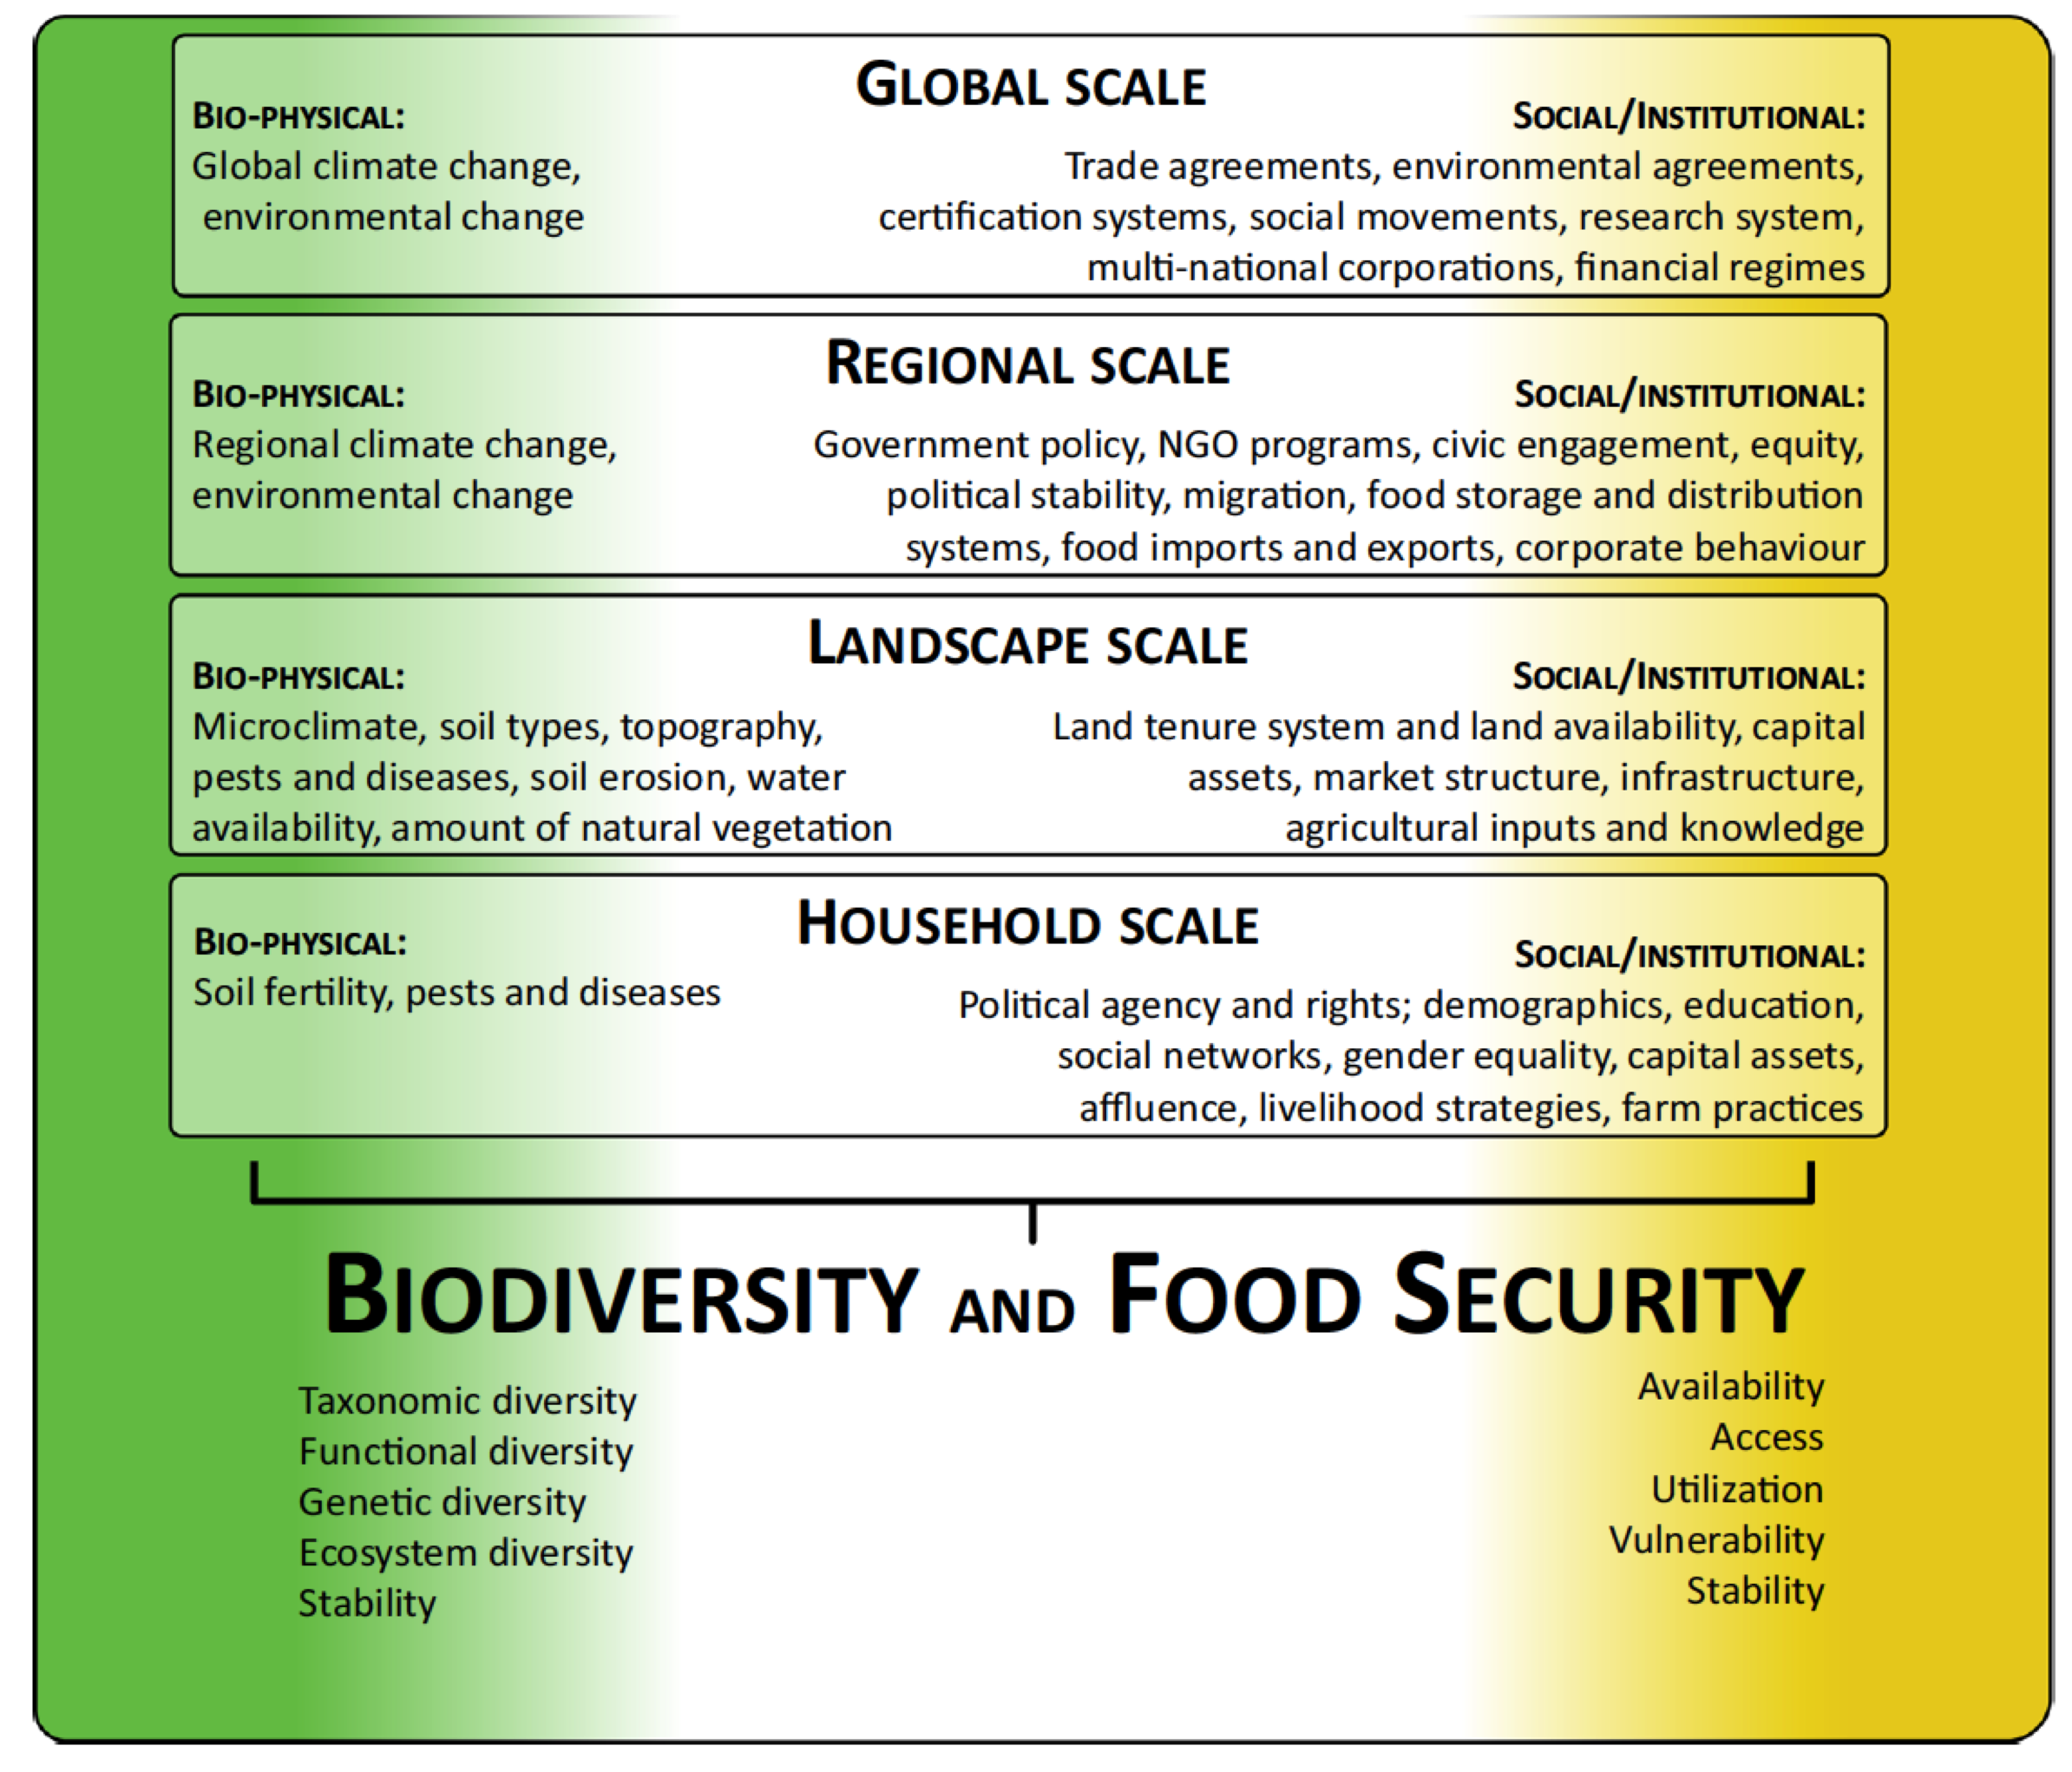 food security 4 essay The world healthy organization calls this global food security crisis new varieties of crops with higher yields are being produced to provide more food conventional breeding - producing offspring using the natural technique of cross-breeding.